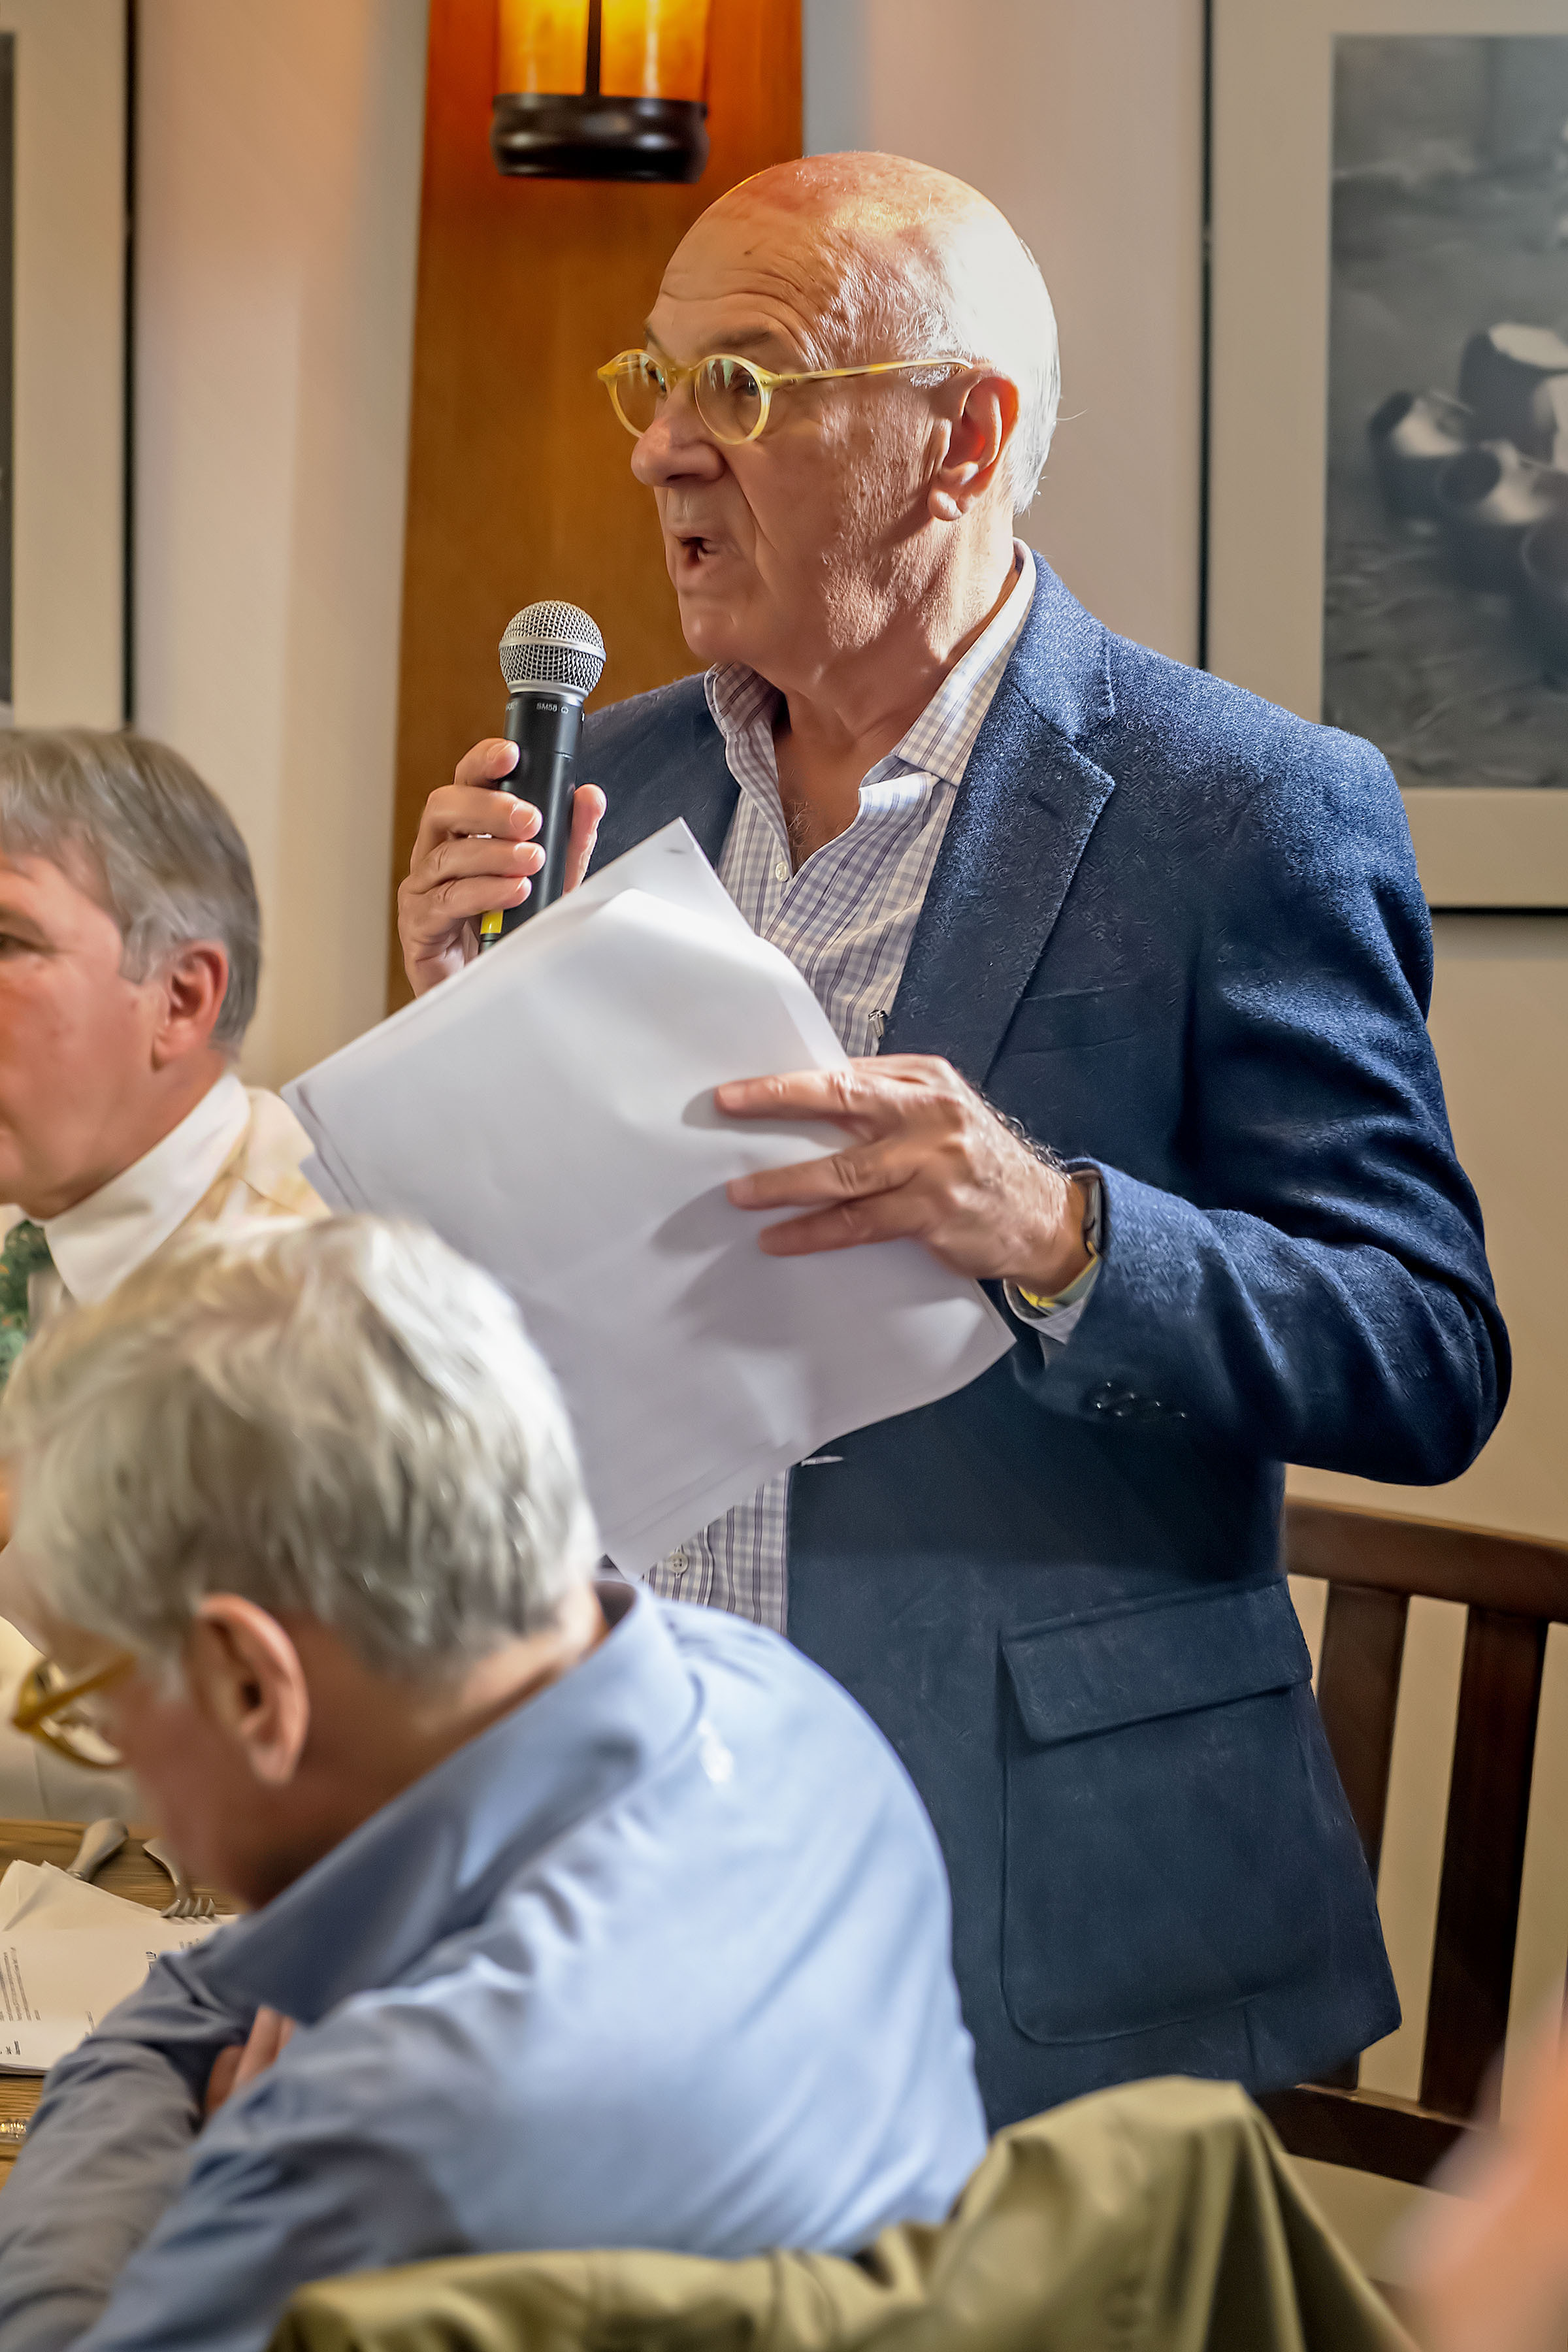 Village resident Leonard Ackerman spoke during The Press Sessions: Affordable Housing event held at Rowdy Hall in East Hampton on Thursday, October 24.   MICHAEL HELLER